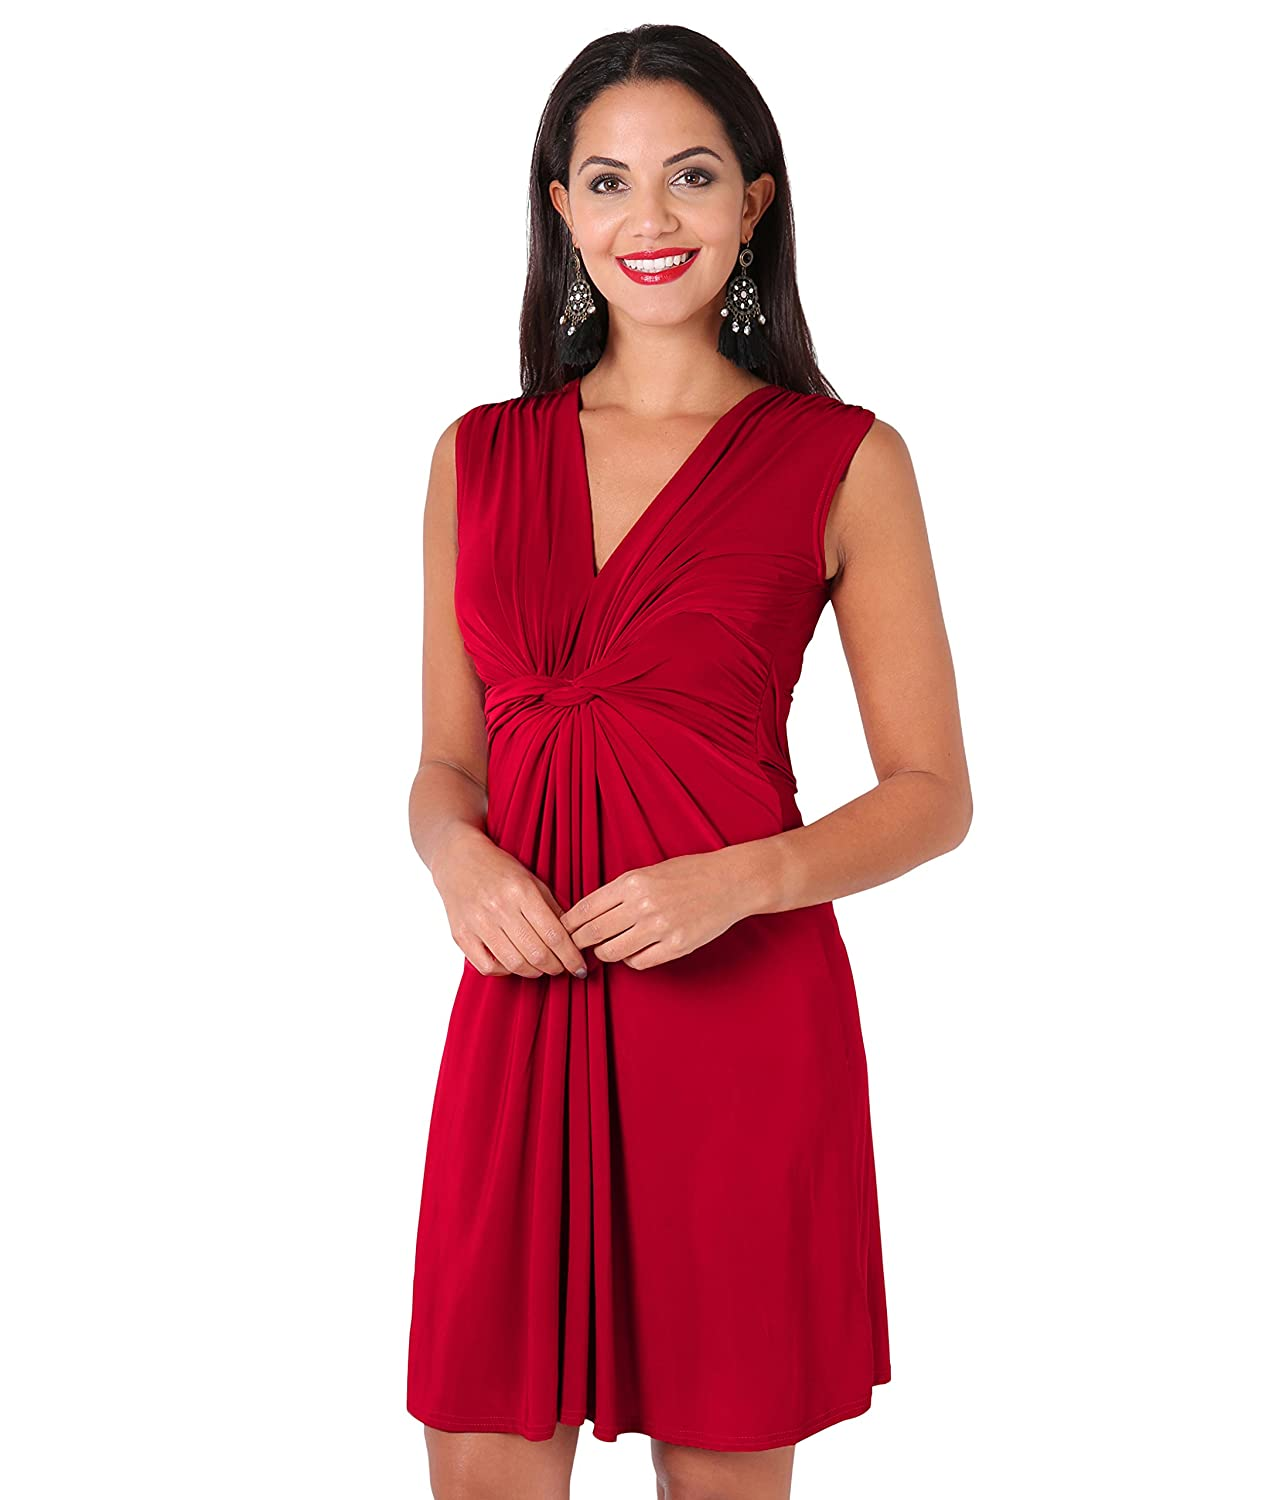 KRISP Women Knot Front Dress Ruched Flattering Stretch Spring Dresses